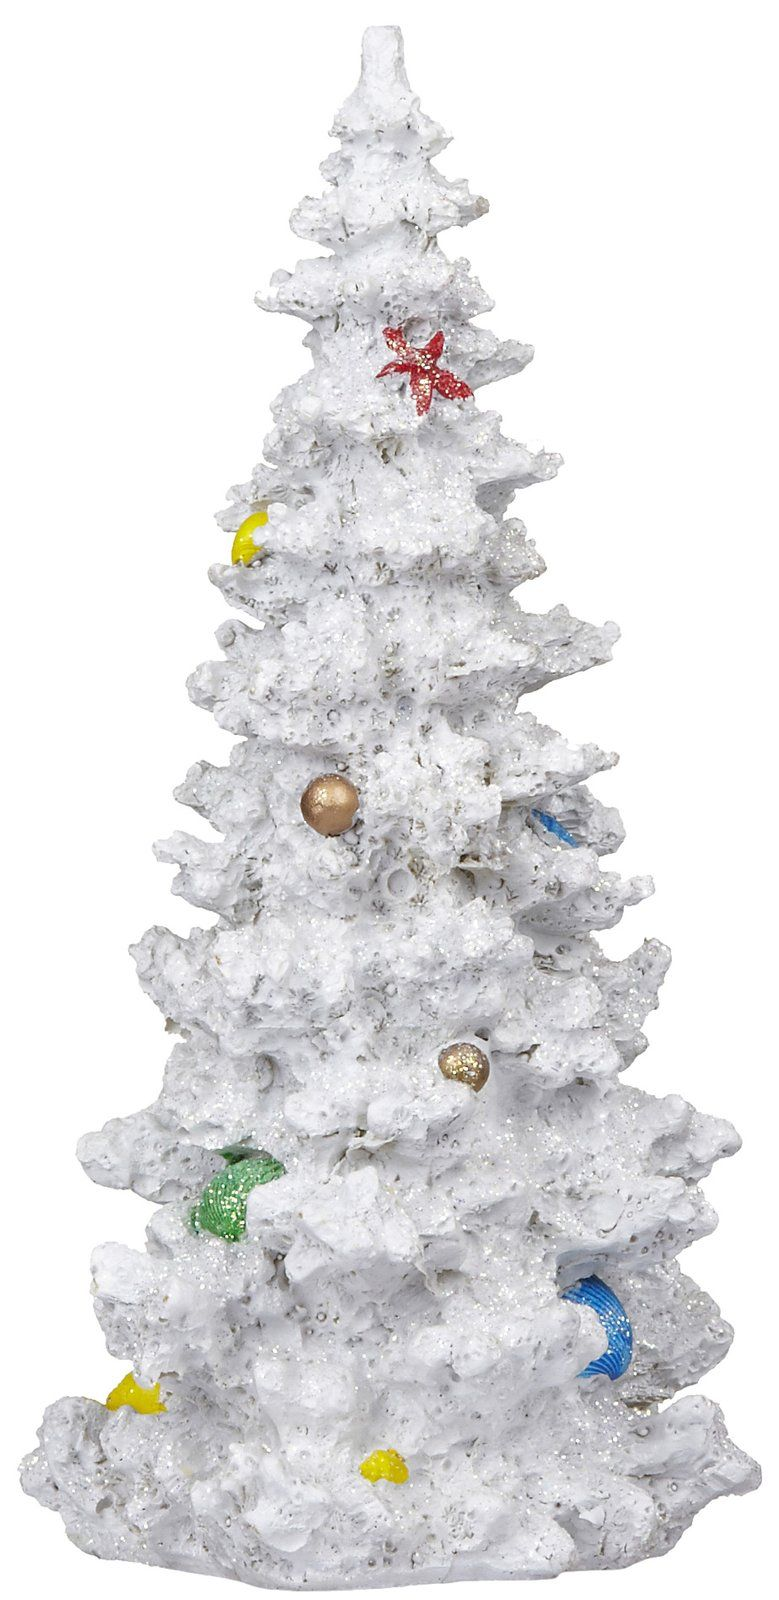 Christmas Tree - For the fish tank!